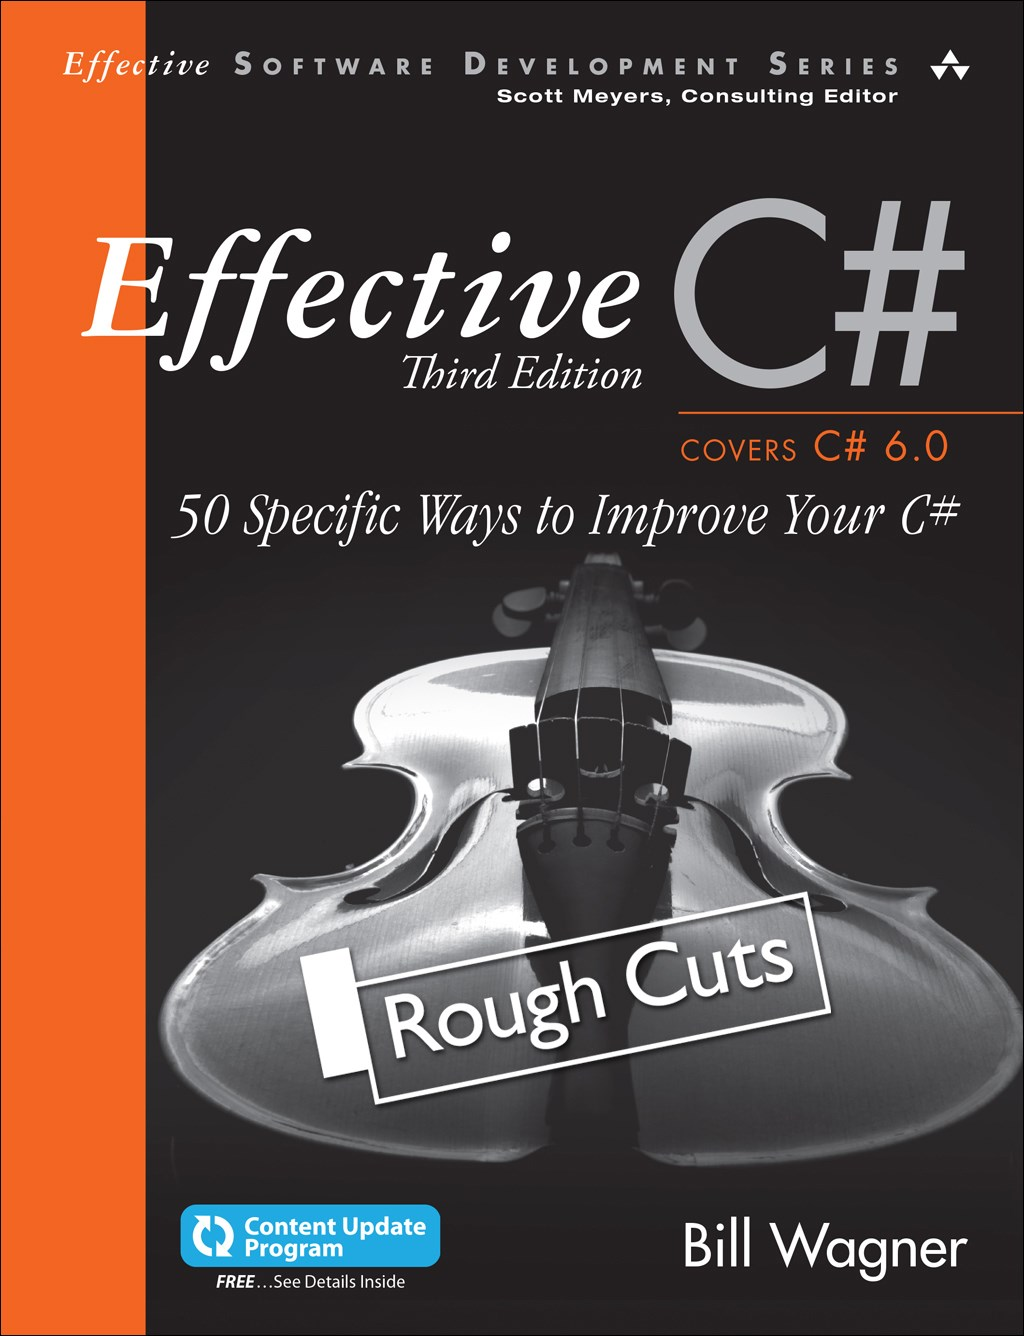 Effective C#  (Covers C# 6.0), (includes Content Update Program),Rough Cuts: 50 Specific Ways to Improve Your C#, 3rd Edition